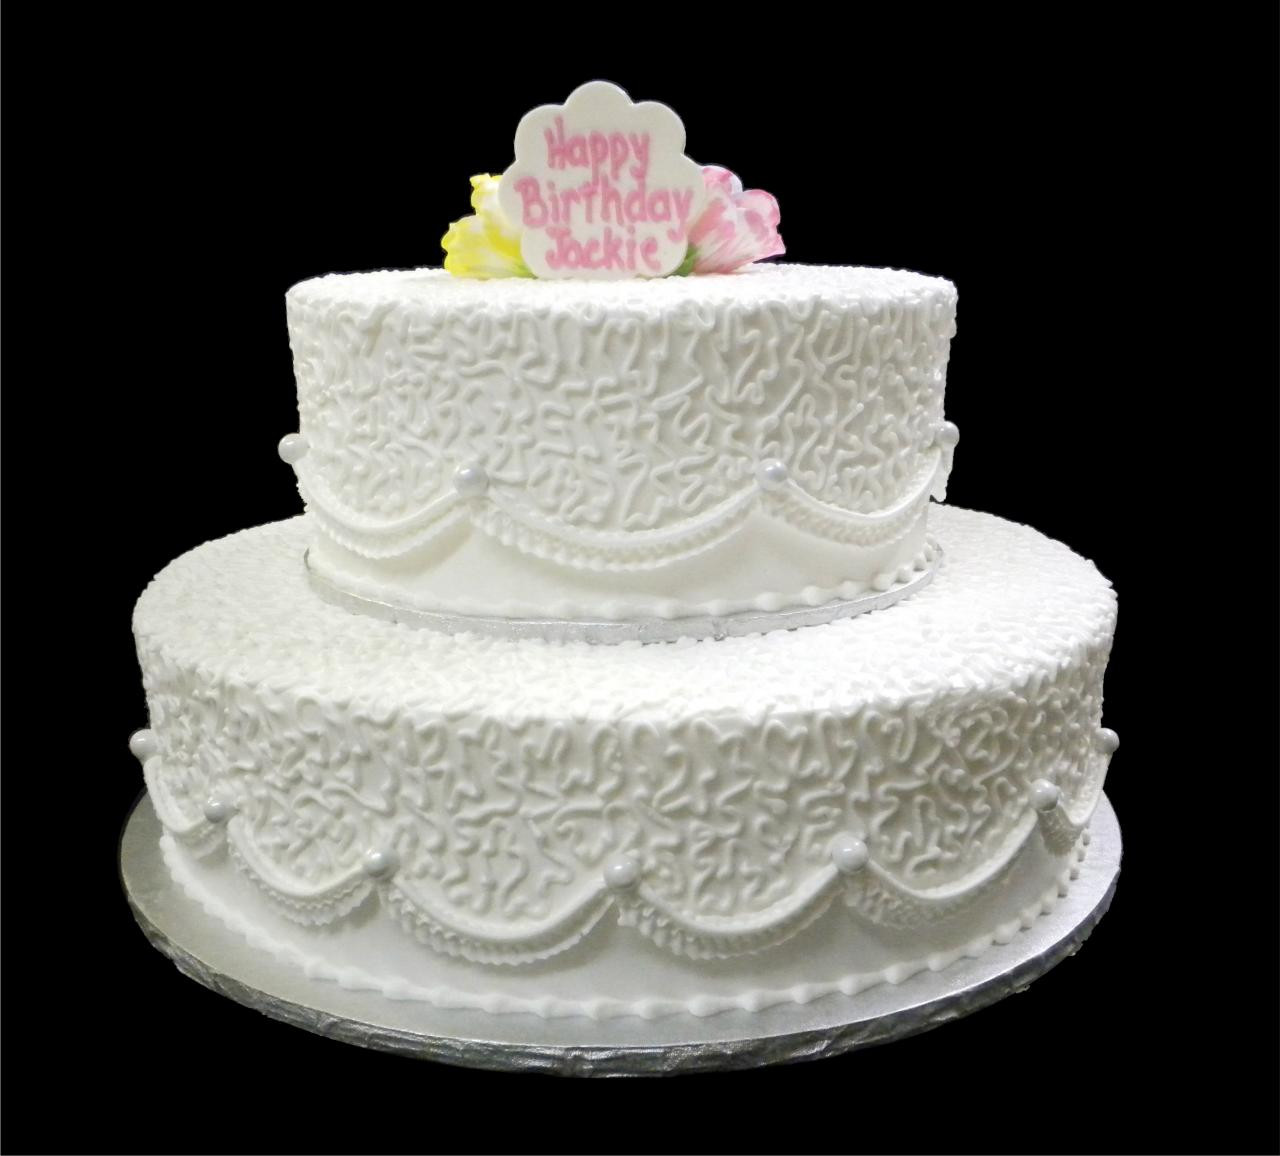 Best ideas about White Birthday Cake . Save or Pin Birthday Cakes Now.